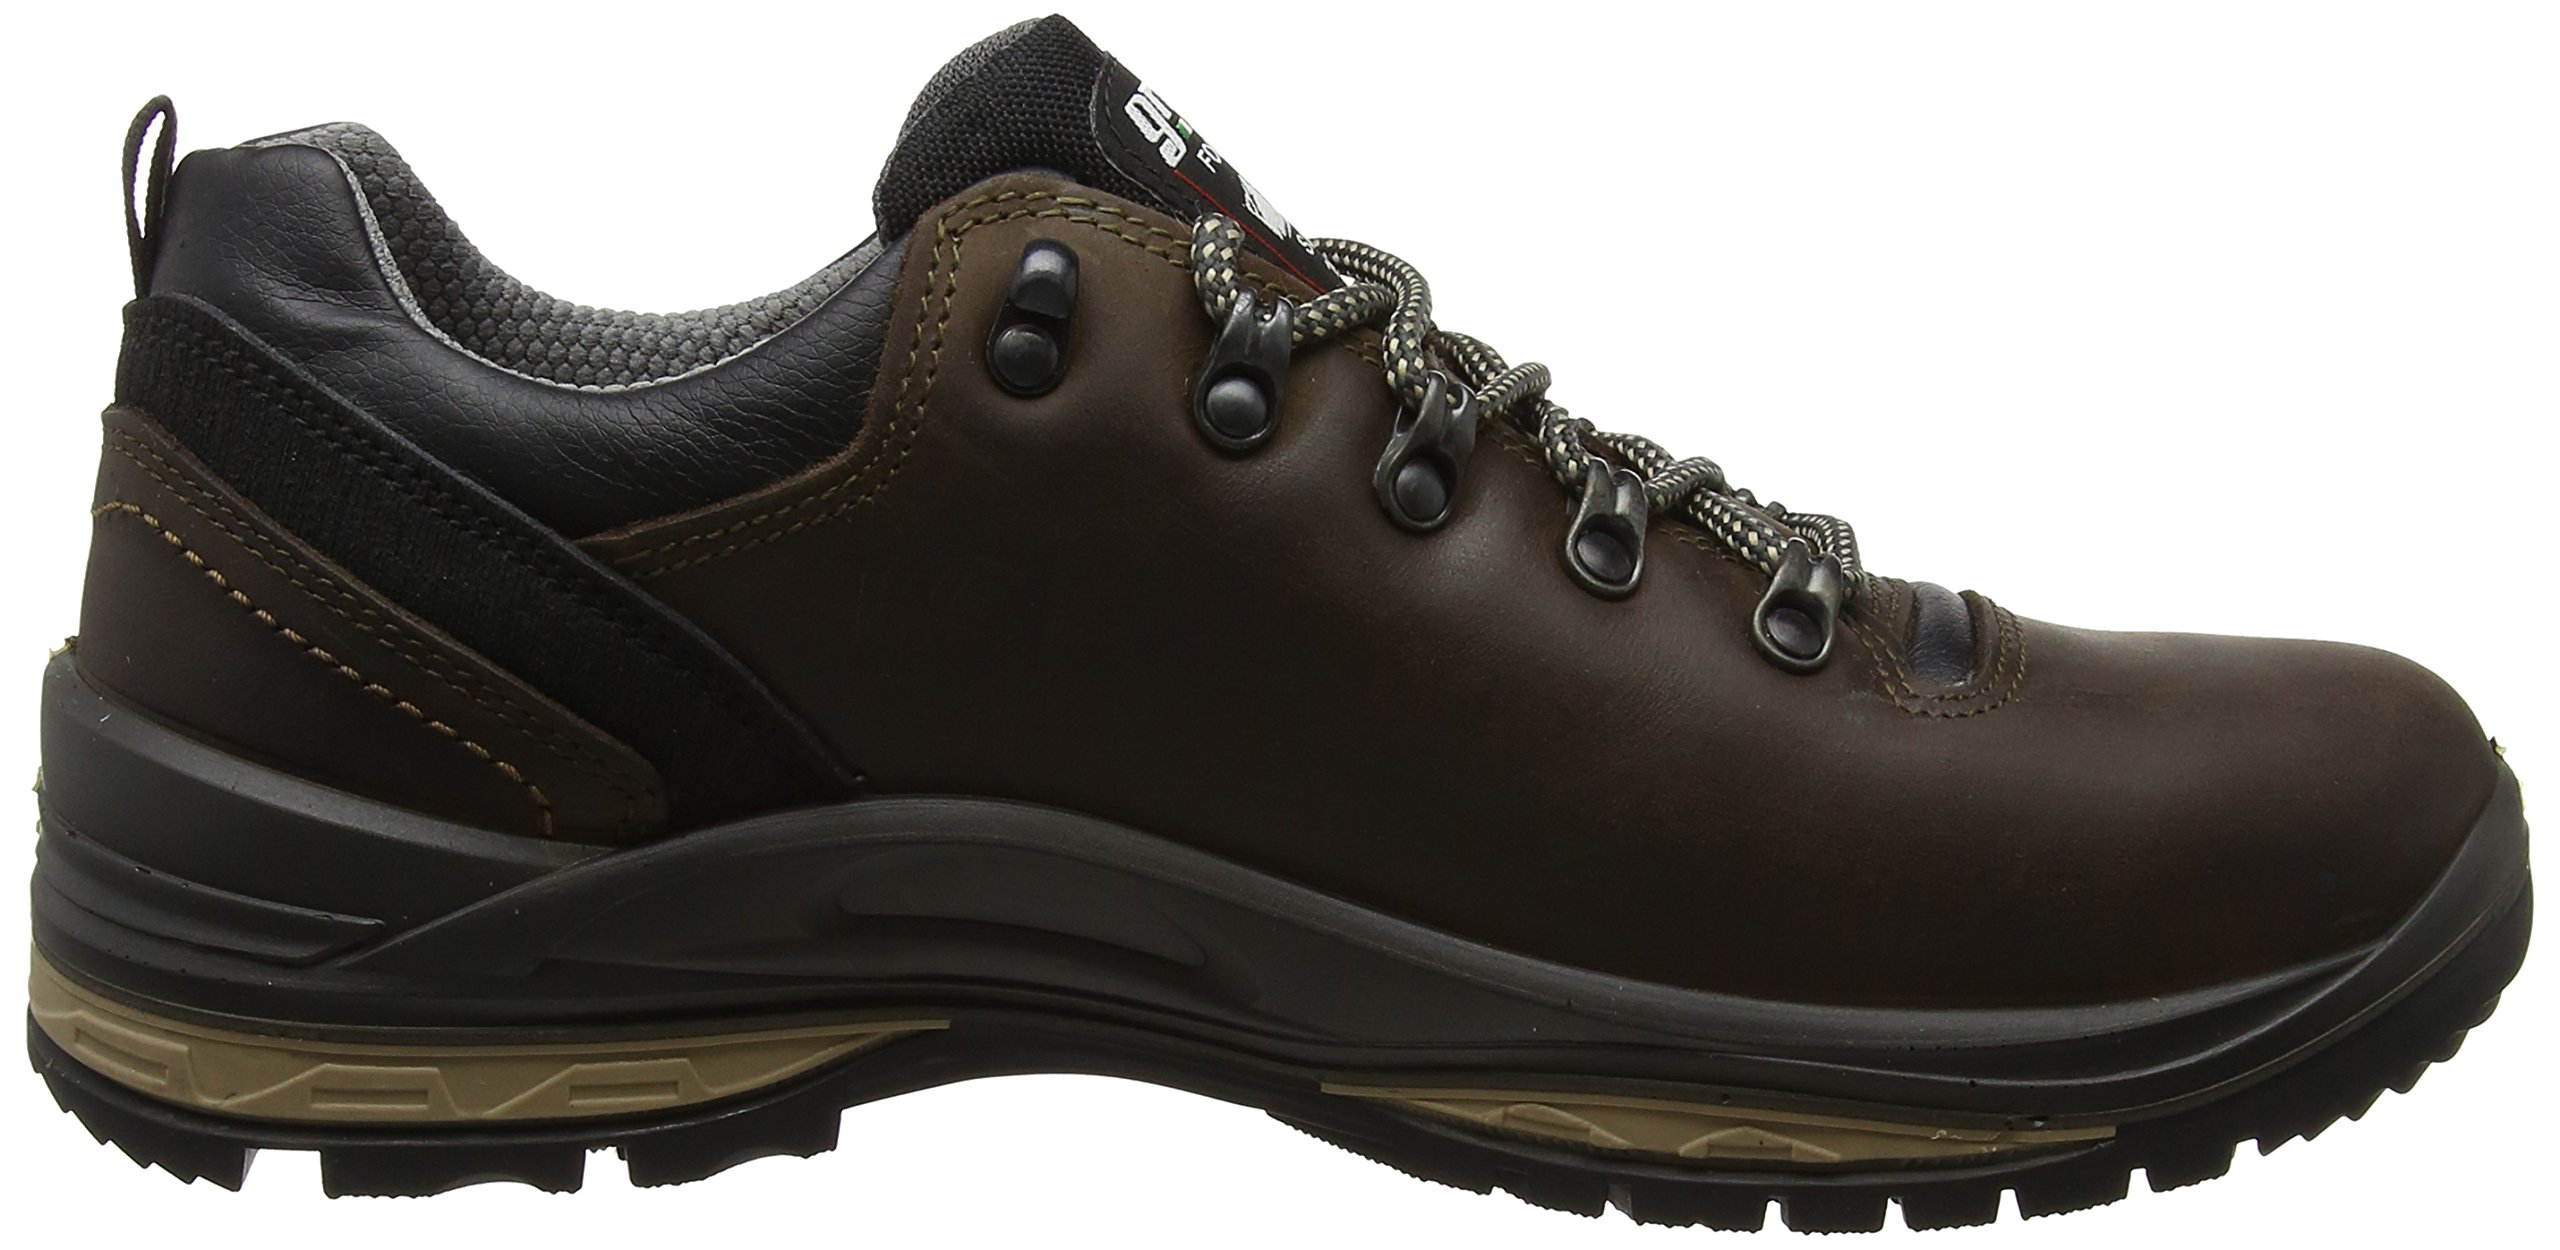 Grisport Men's Warrior Low Rise Hiking Boots 6